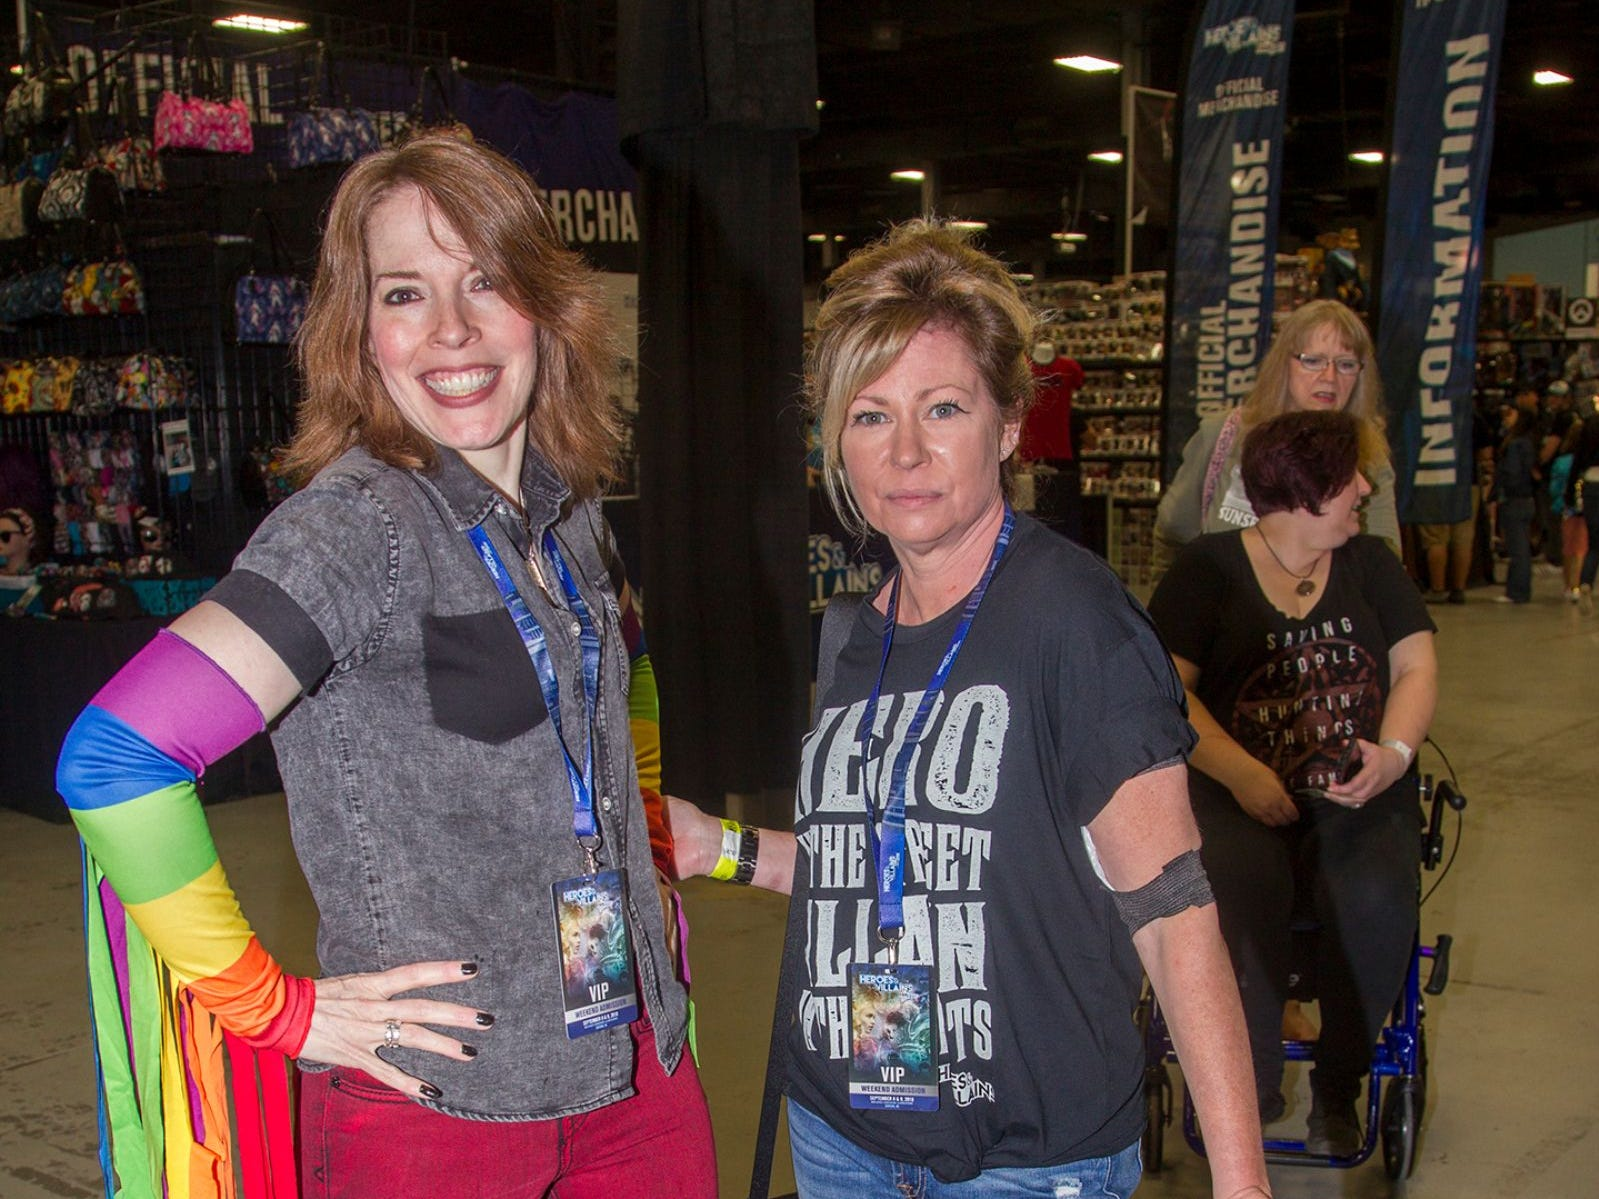 Kelly and Mary. The 2018 Heroes and Villains Fan Fest took place at the New Jersey Convention & Expo Center. 09/09/2018